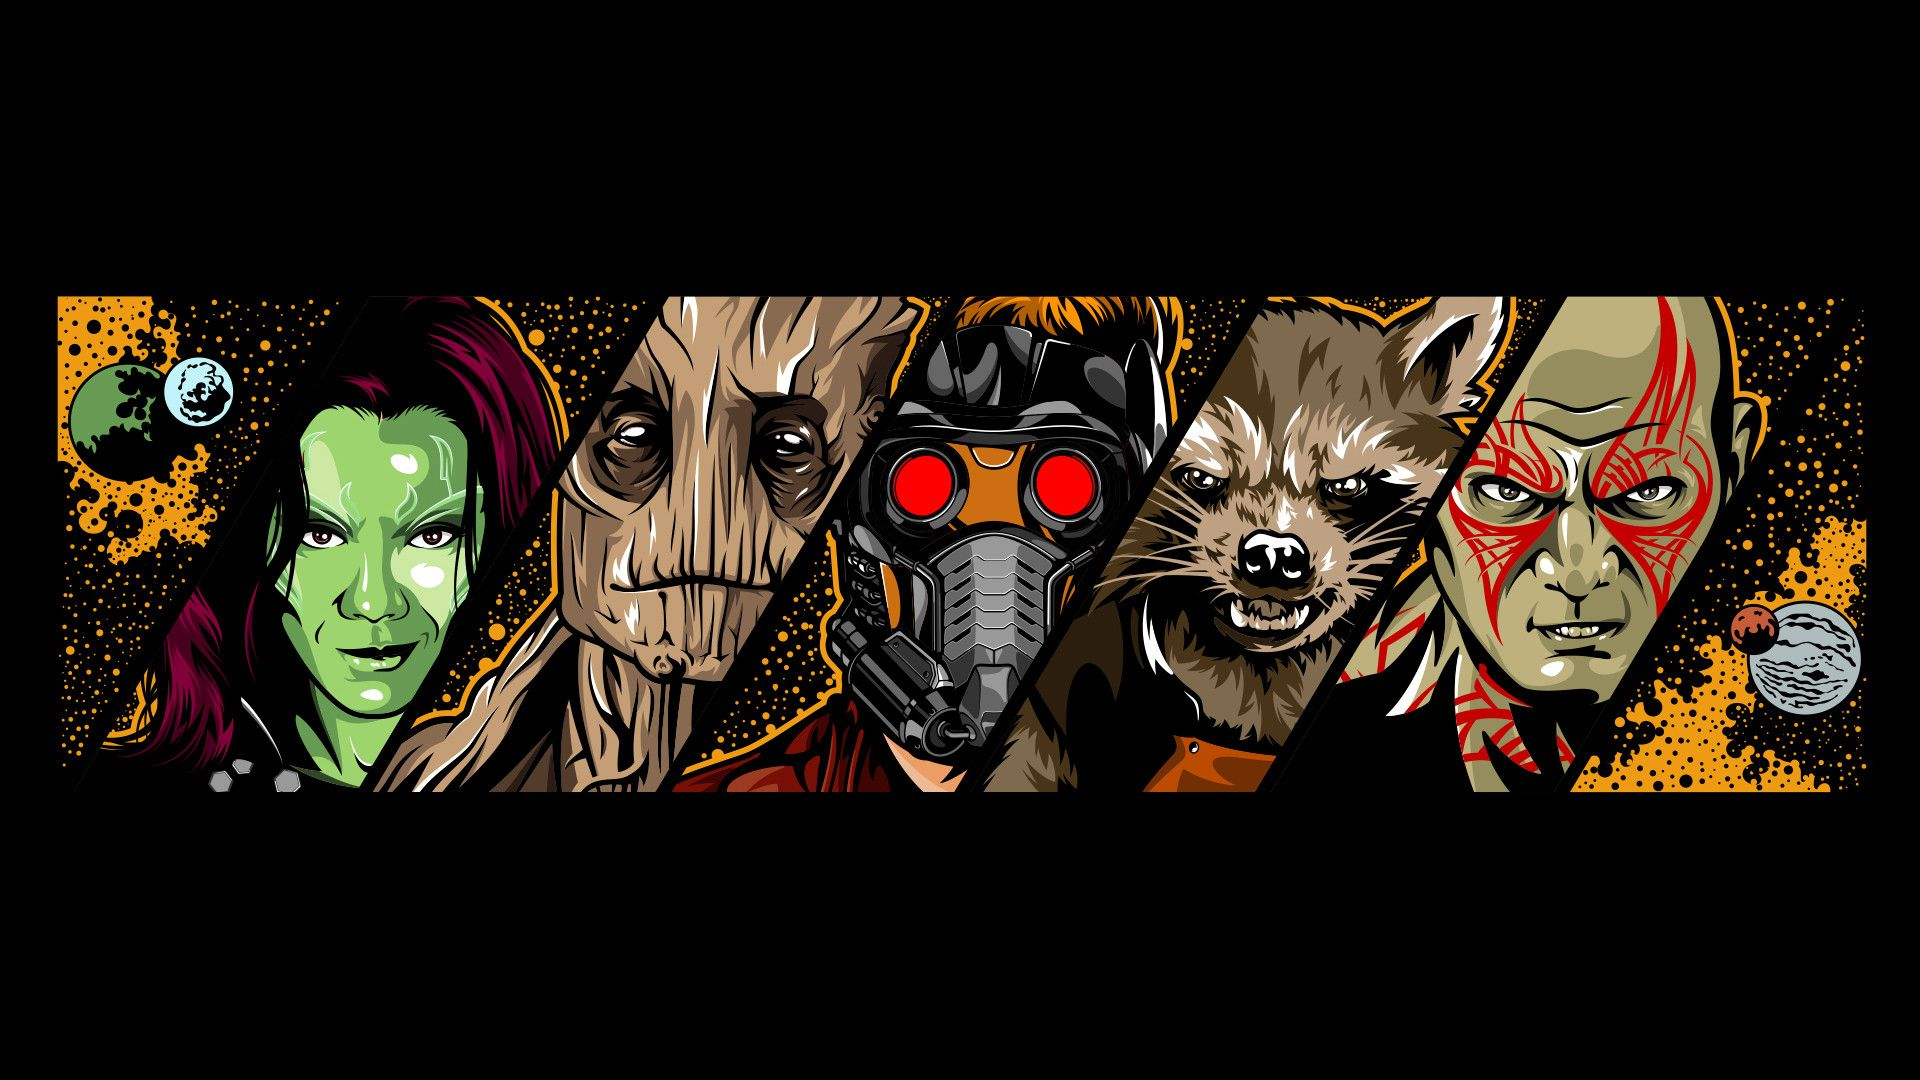 Guardians of the Galaxy [1920x1080] wallpapers oadas 1920x1080